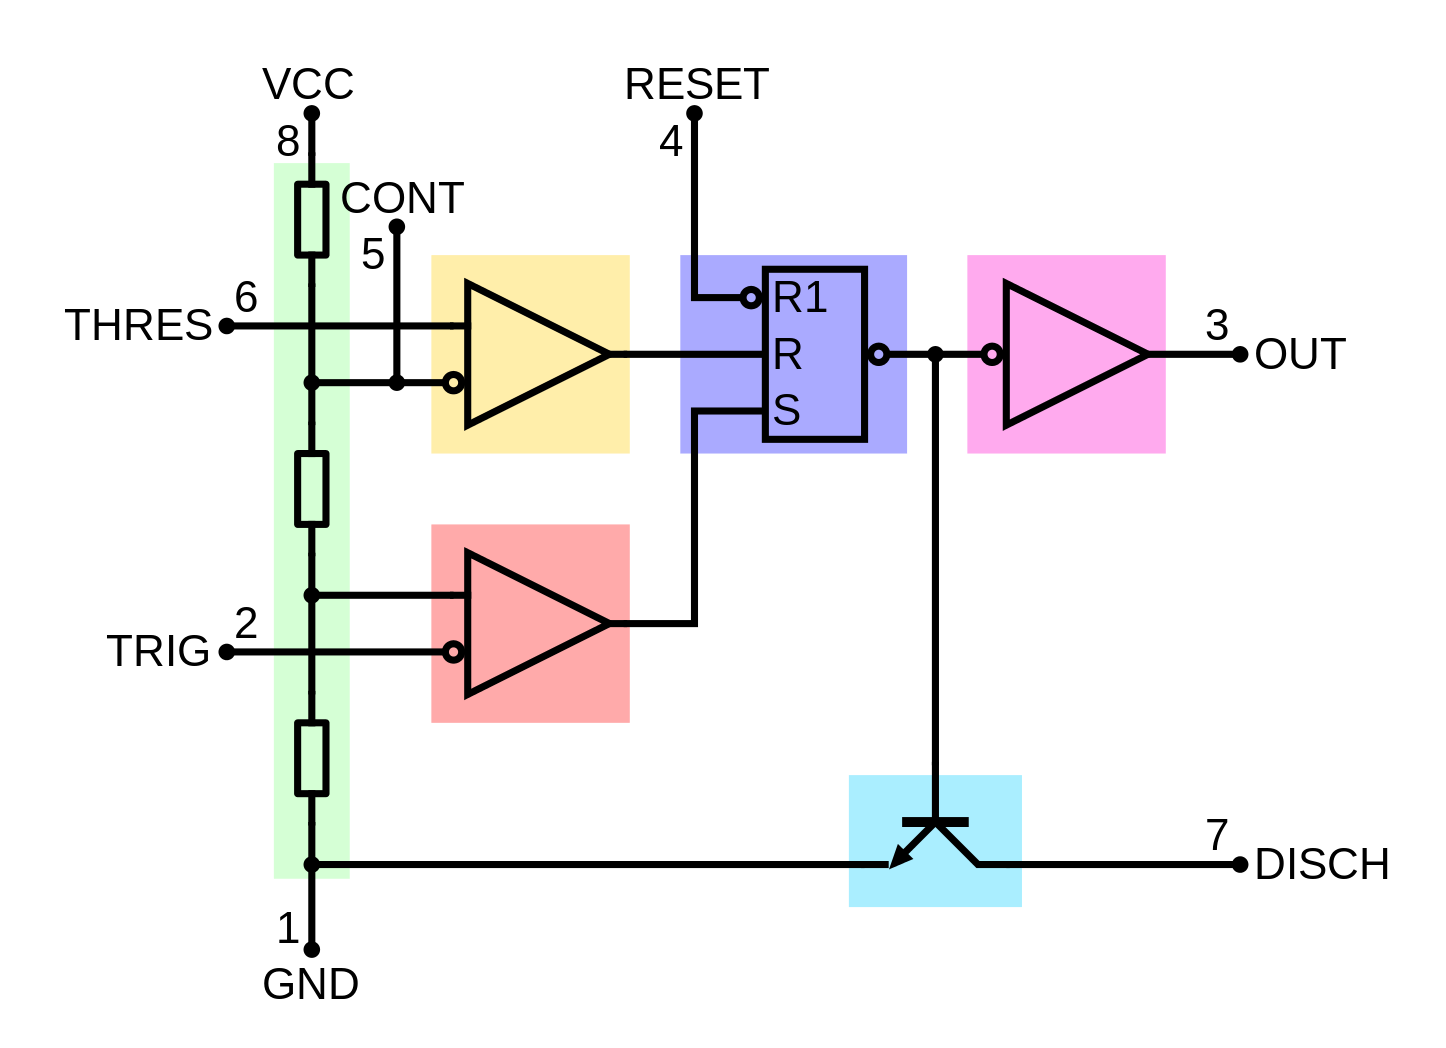 A schematic for a 555 timer integrated circuit